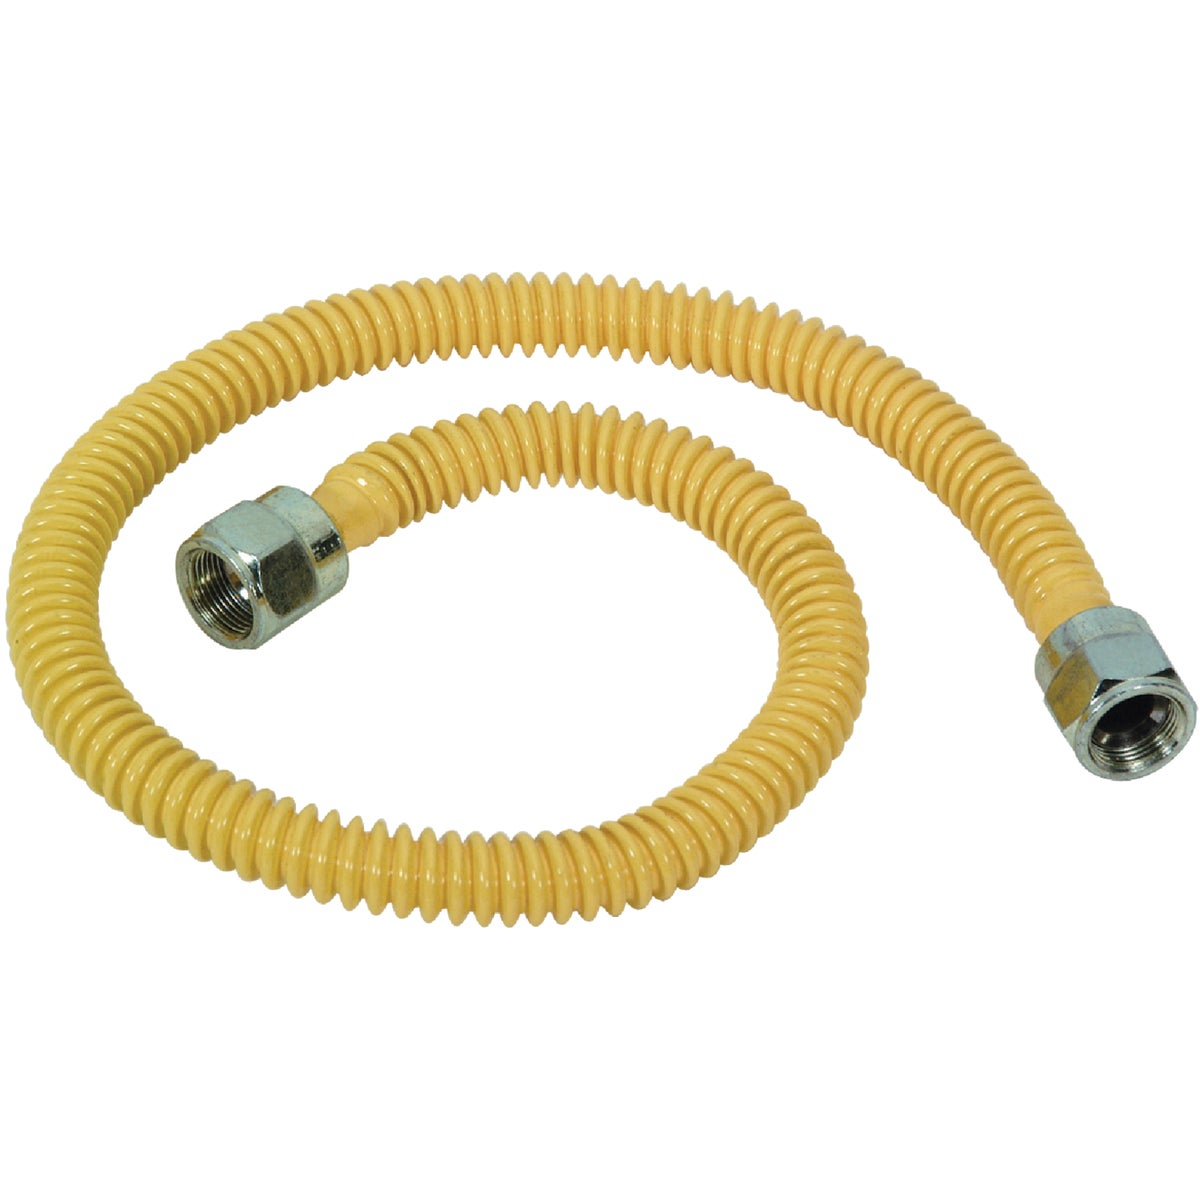 "3/8"" GAS CONNECTOR - CSSTNN-46N by Brass Craft"